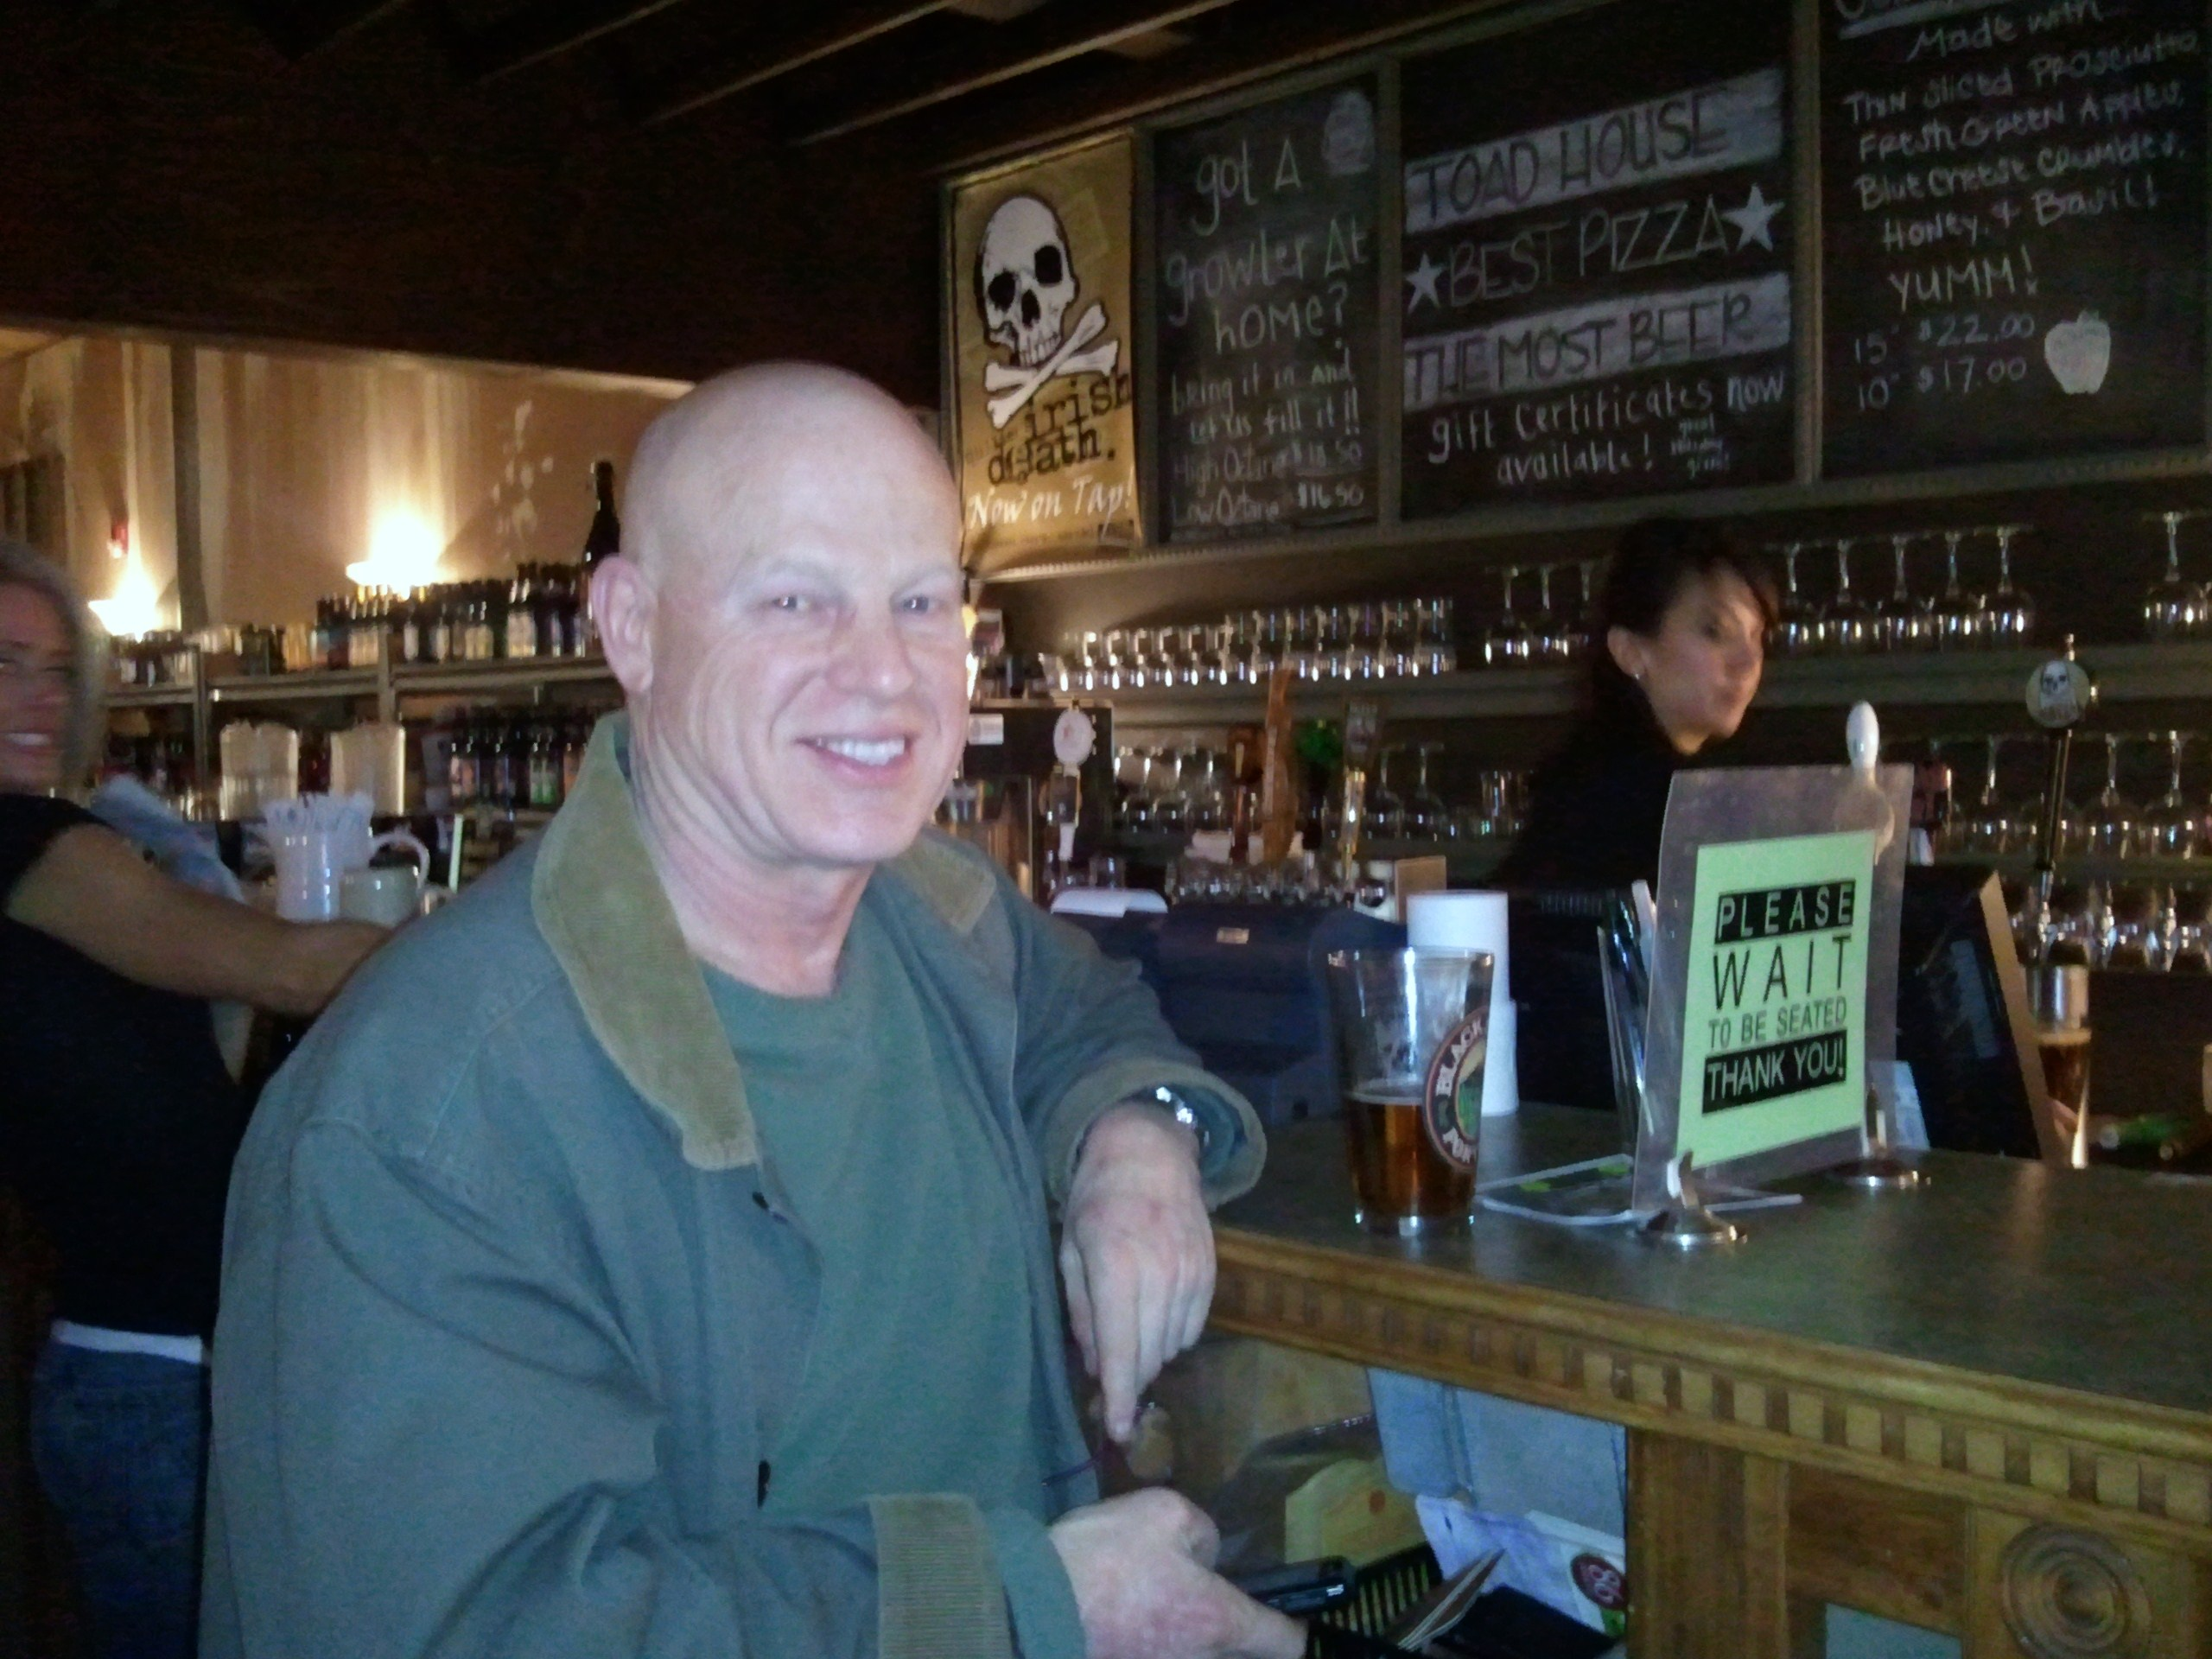 Pizza at the toad house pub east bremerton silverdale revealed performing sciox Image collections